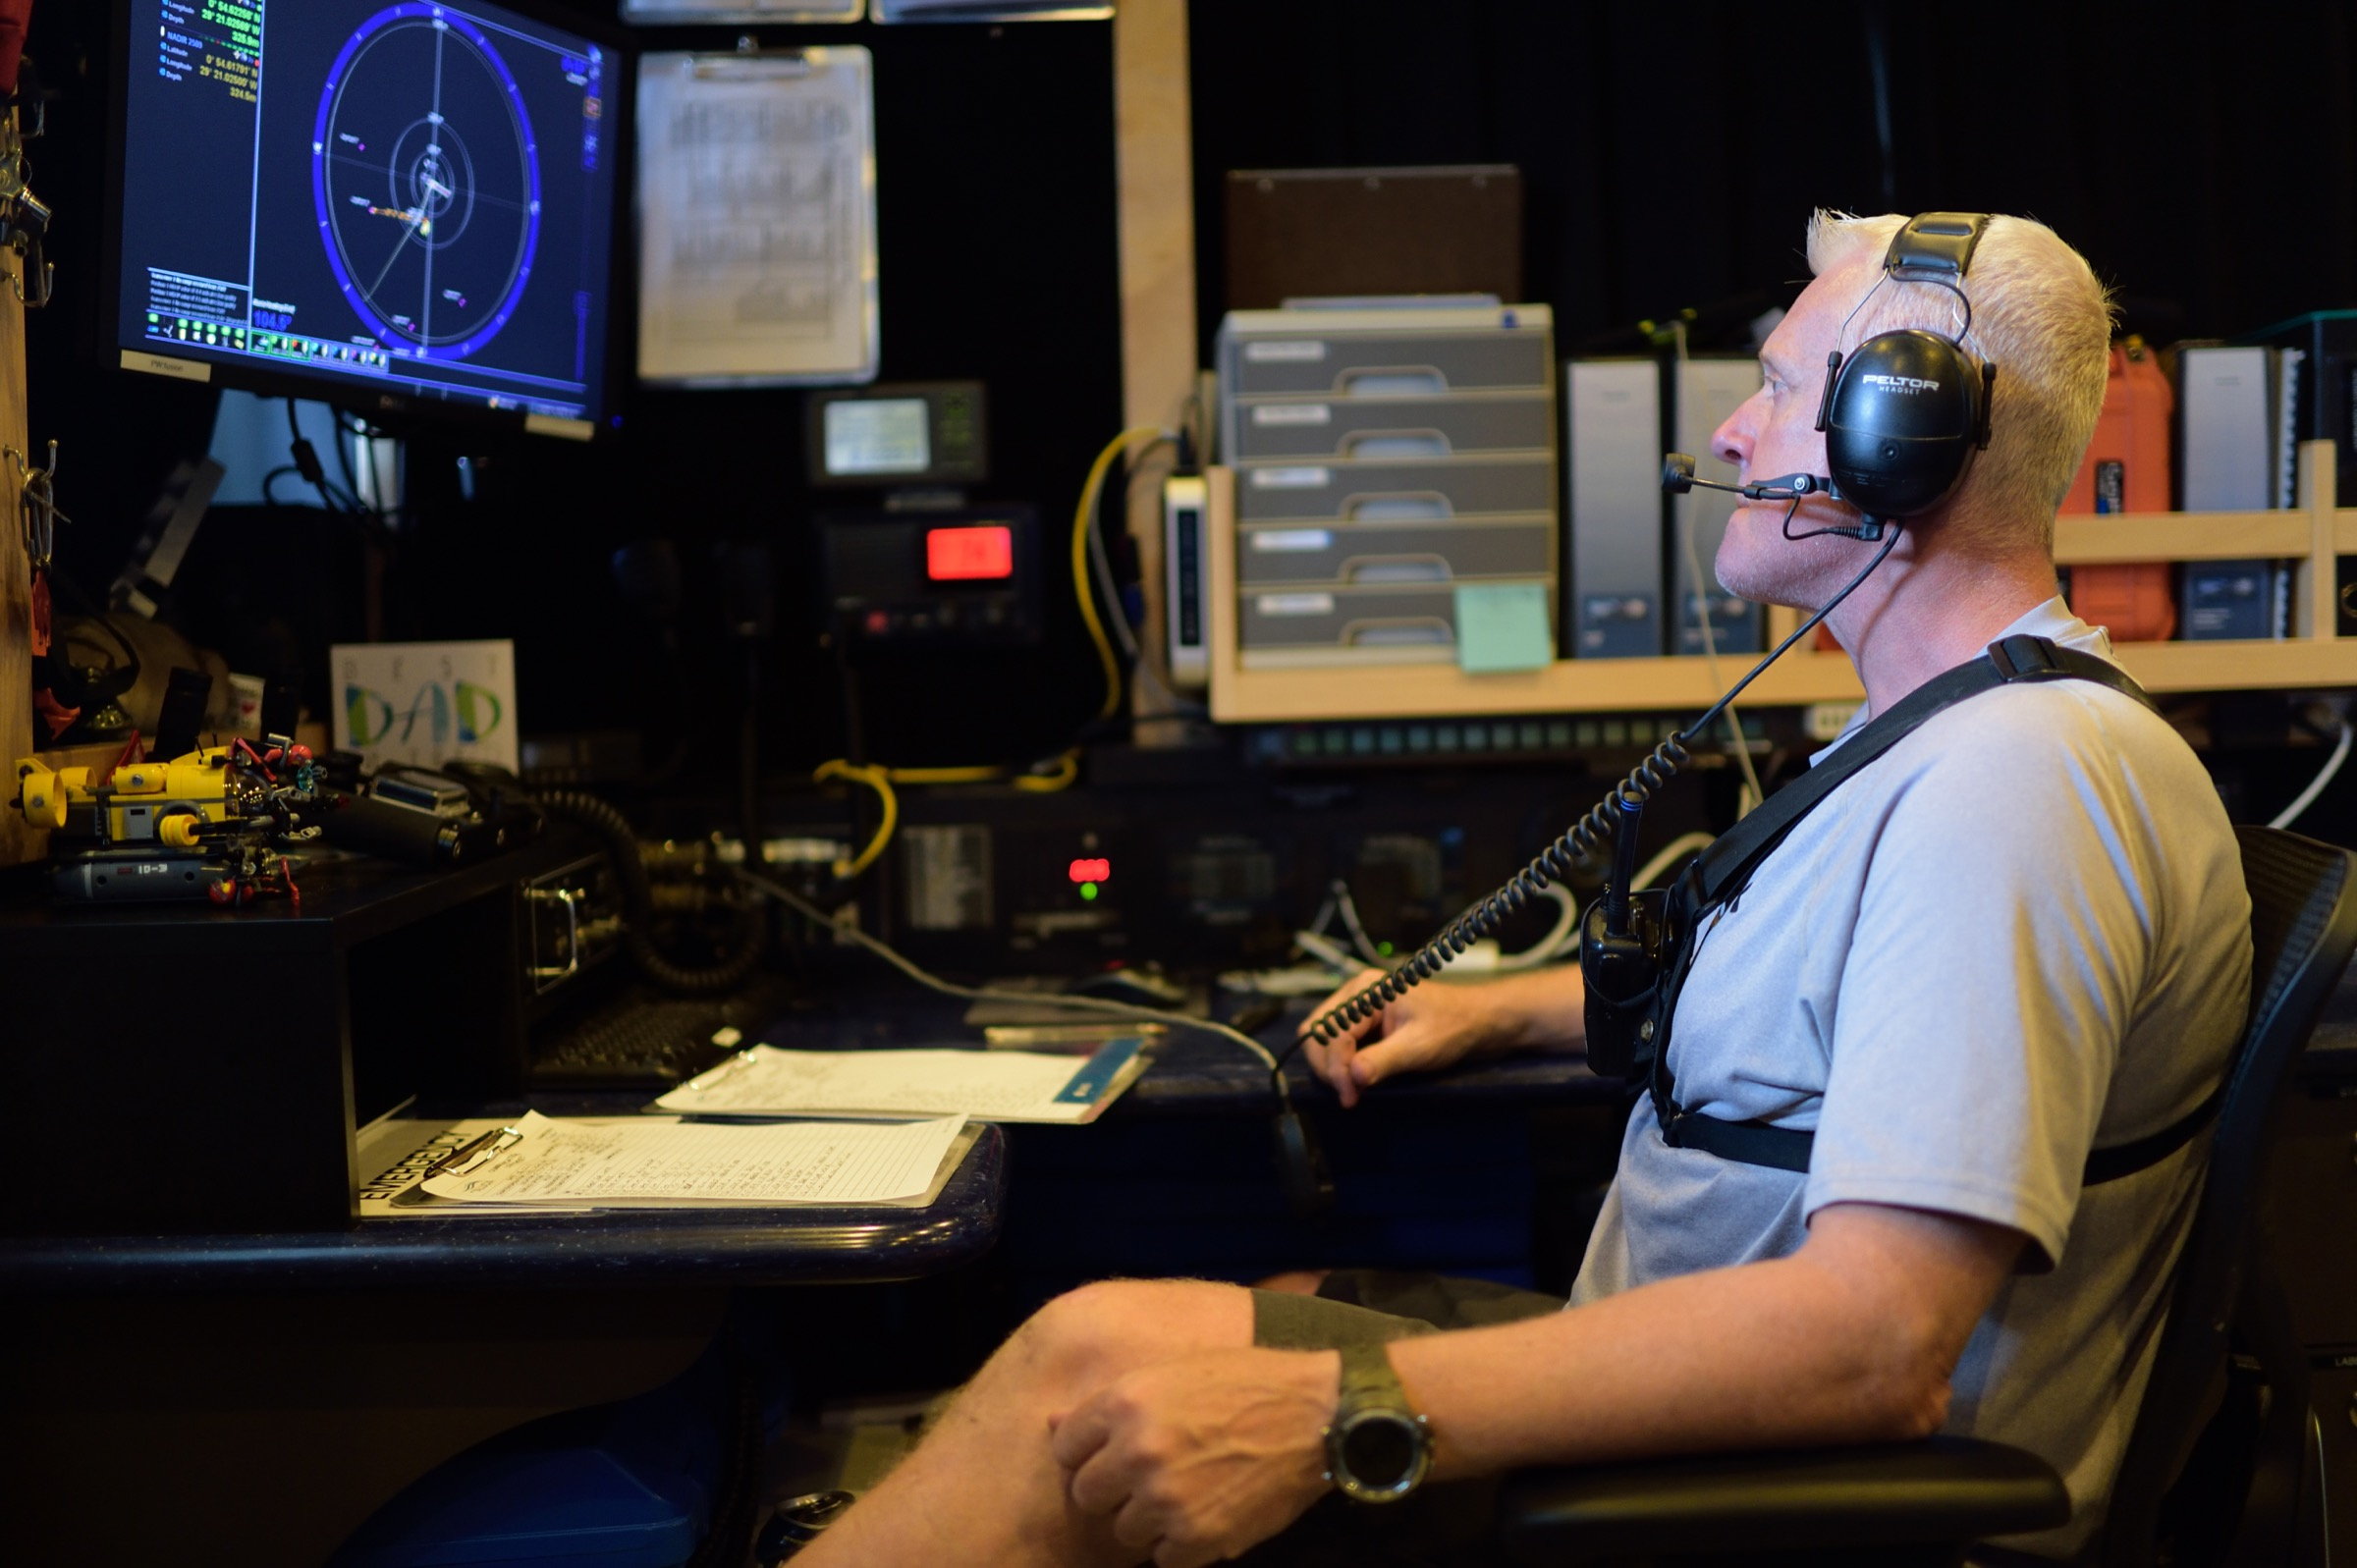 Submarine team leader Alan Scott keeps a close eye on video monitors in the control room onboard the M/V Alucia. Photograph by Solvin Zankl